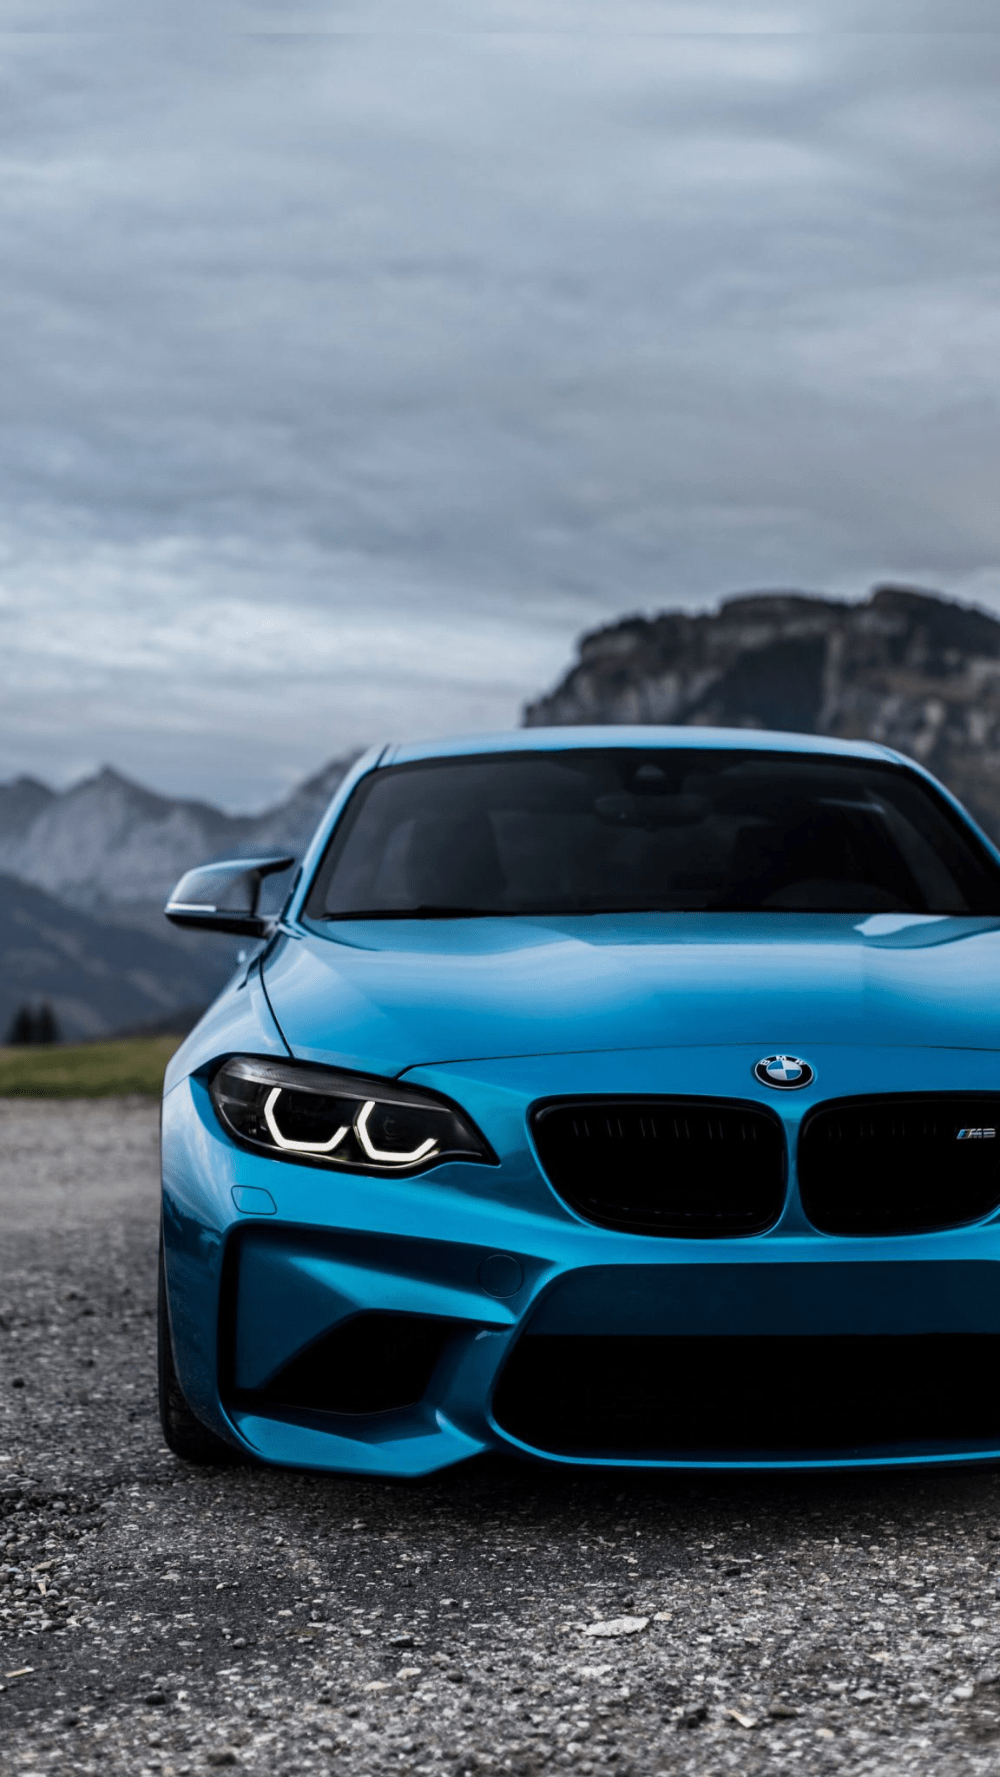 Bmw Wallpaper 4k : wallpaper, Wallpaper, Iphone